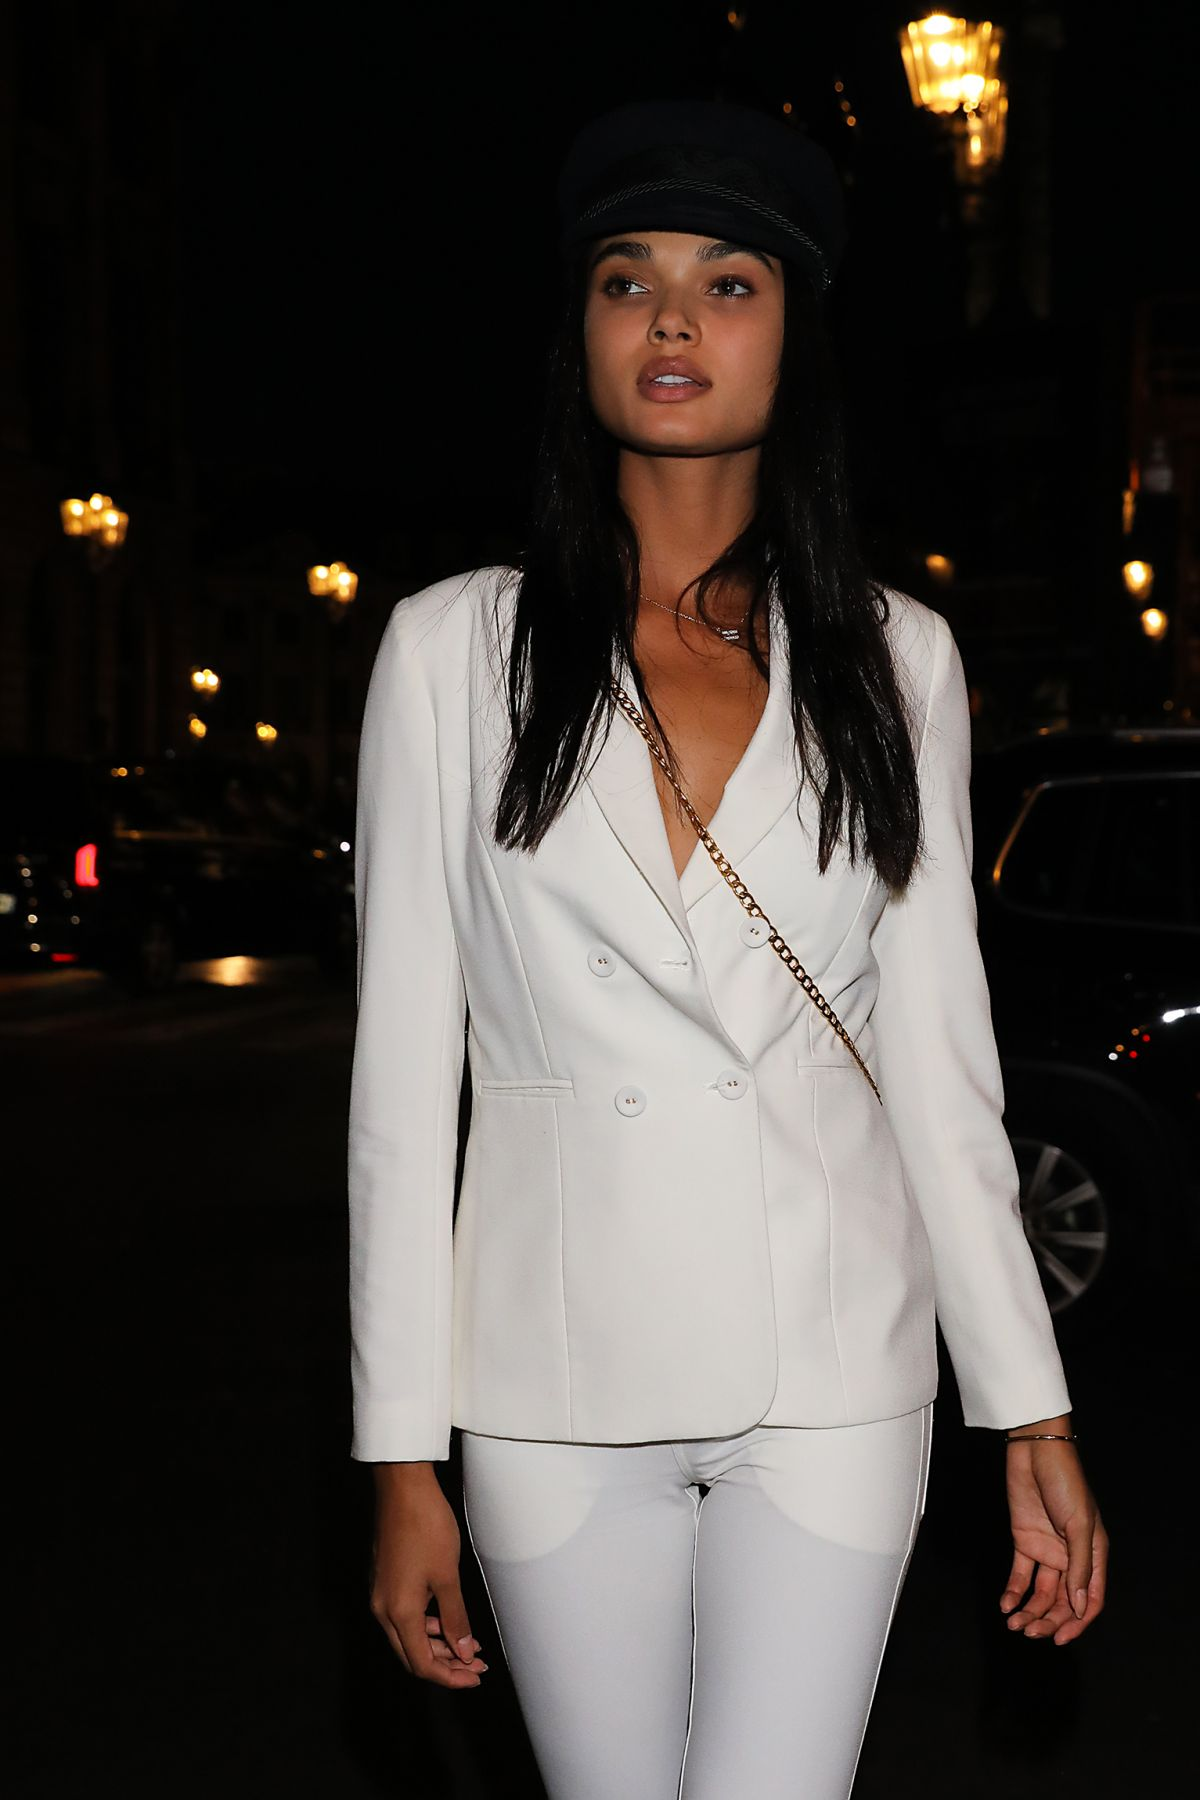 daniela-braga-is-seen-out-and-about-during-the-spring-summer-2018-paris-fashion-week-in-paris-2.jpg